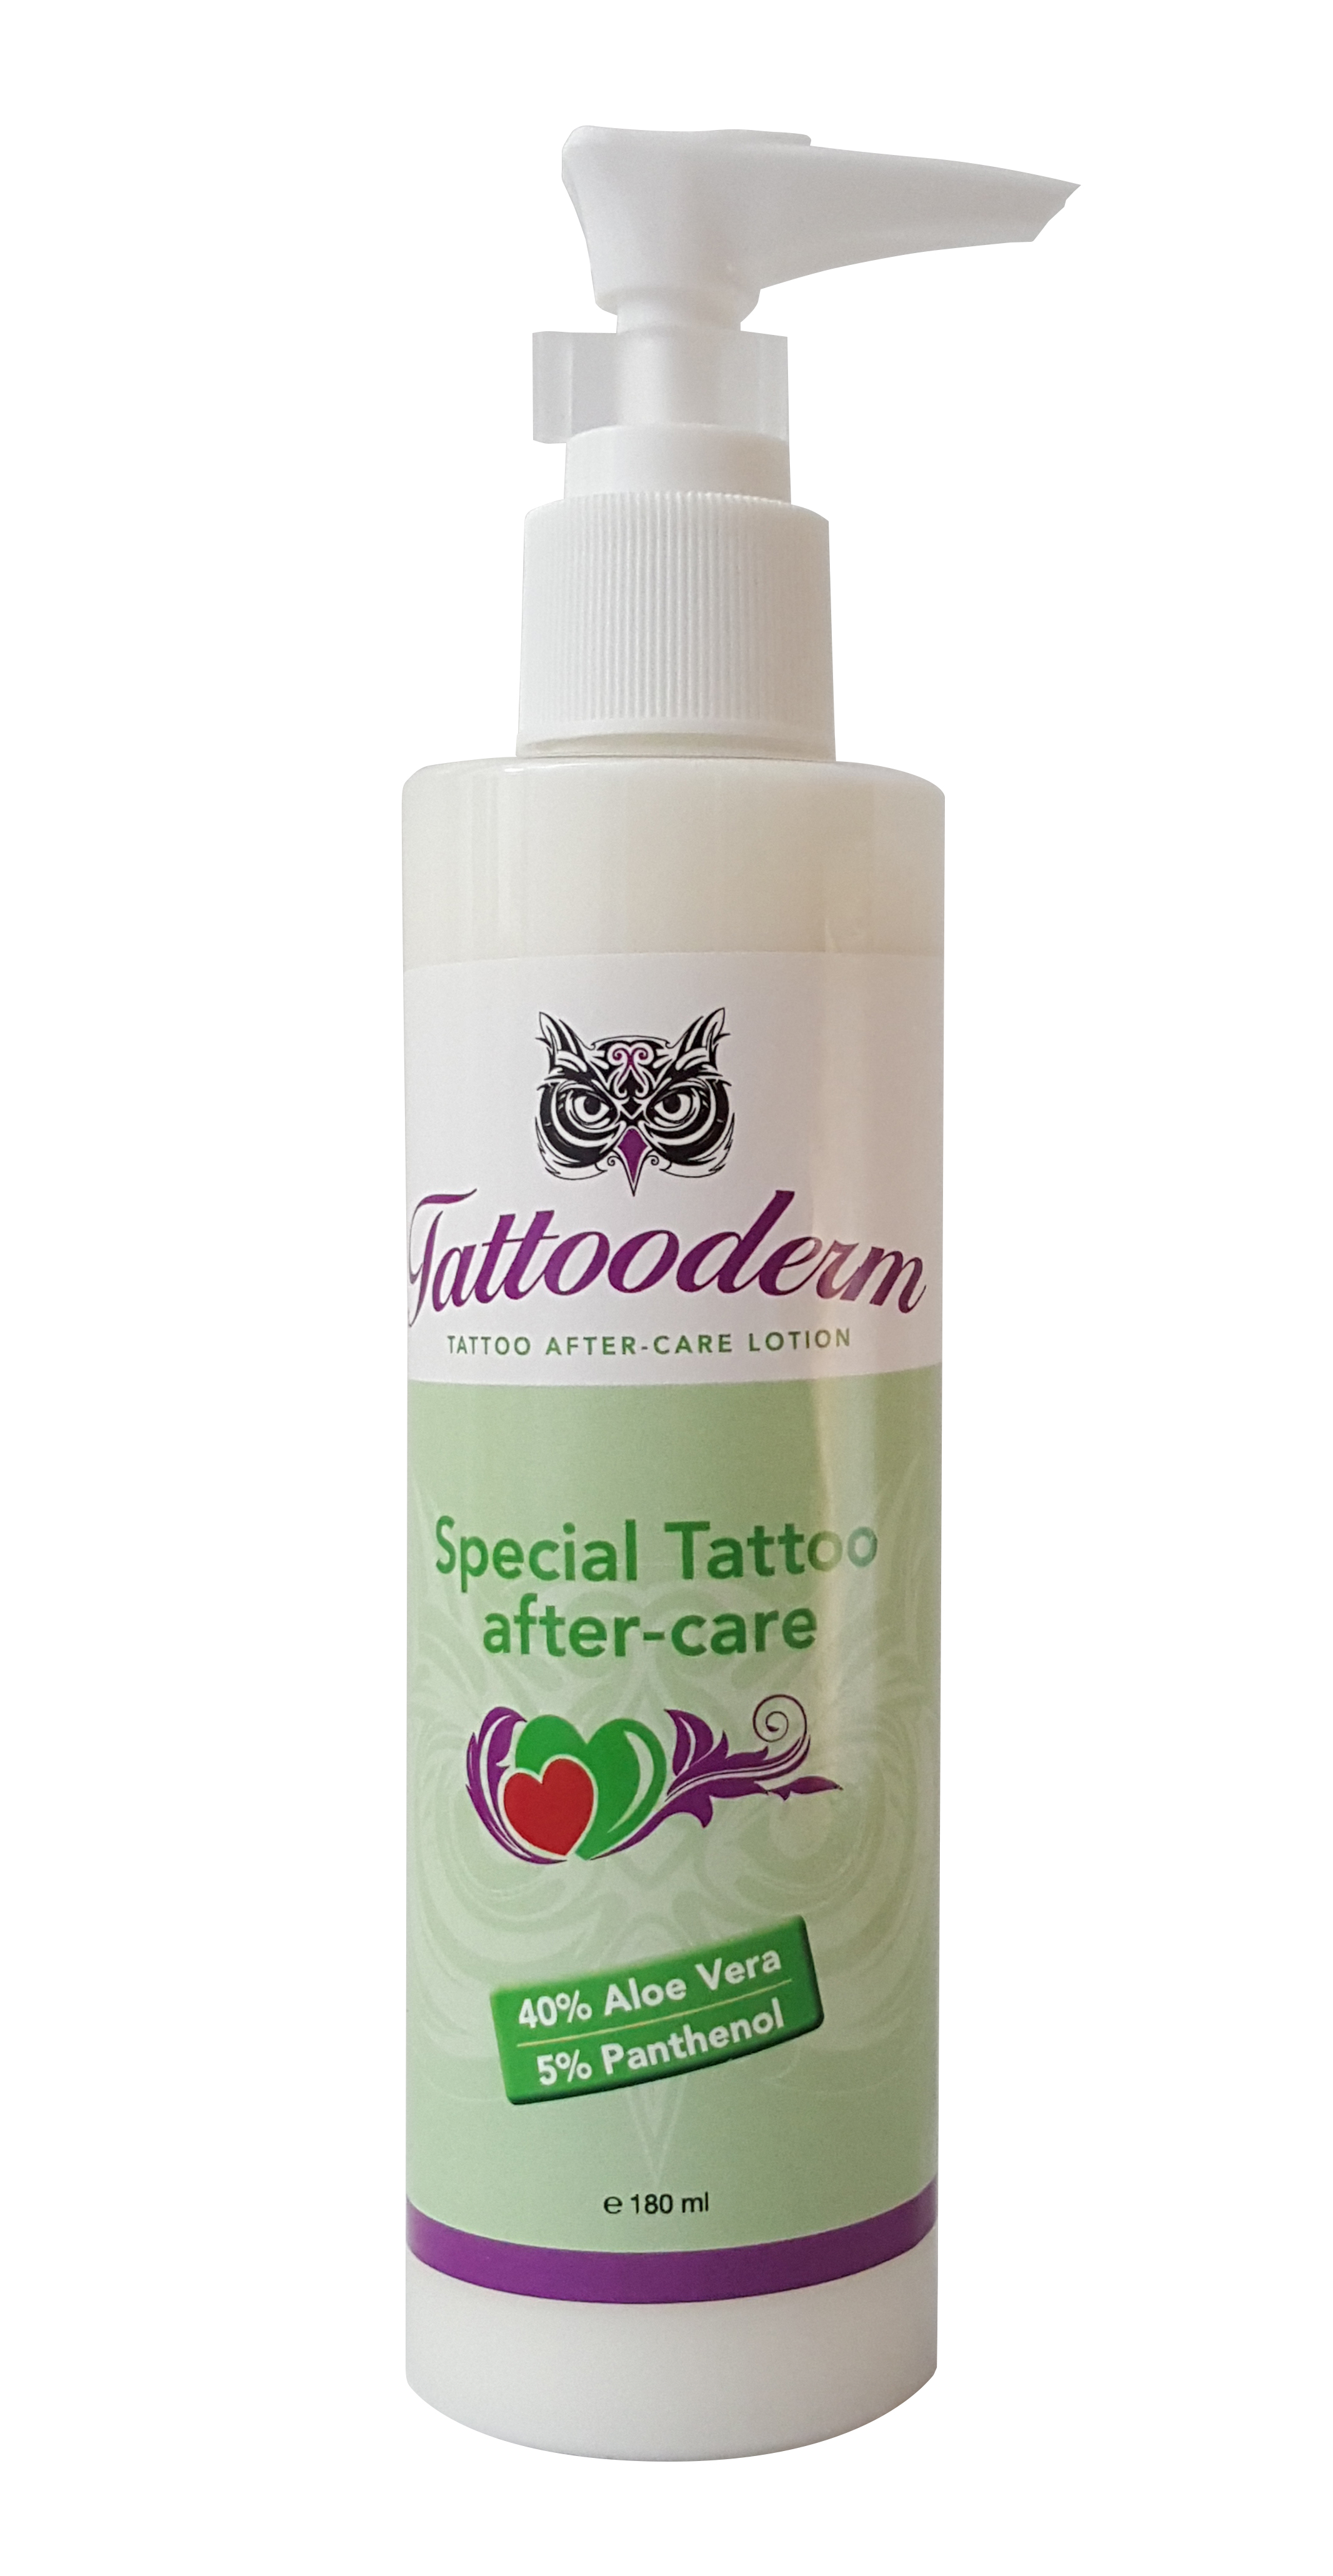 Tattooderm after care lotion sth for After tattoo lotion